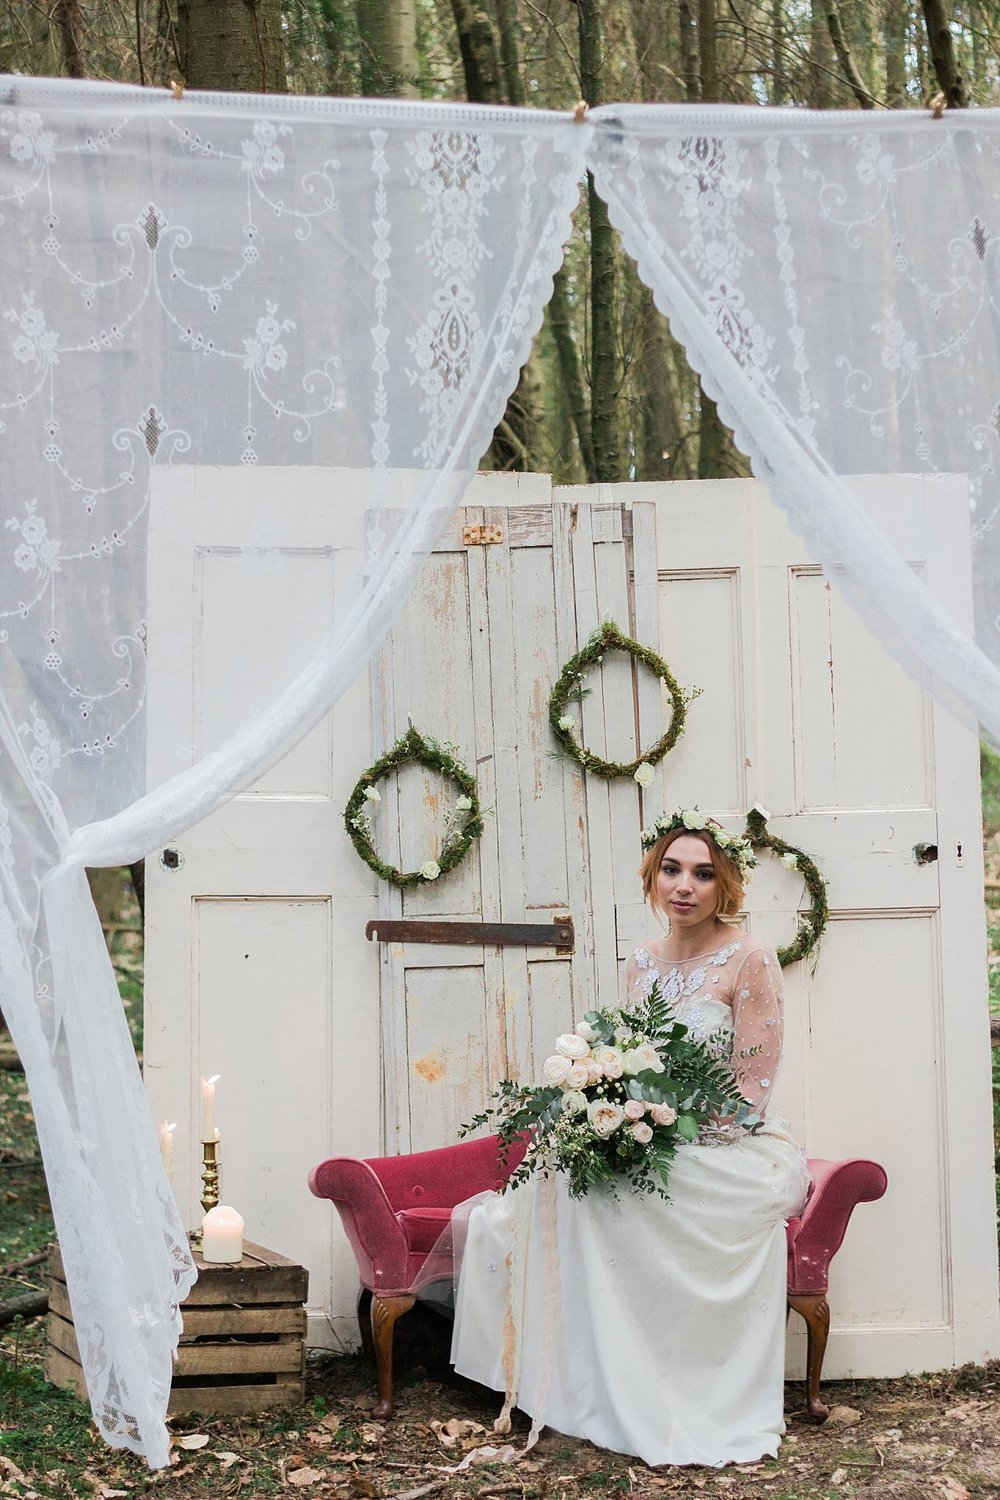 Vintage Amy Wedding Styling-Whimsical Woodland Wedding Inspiration Kent-Vintage Photobooth To Hire